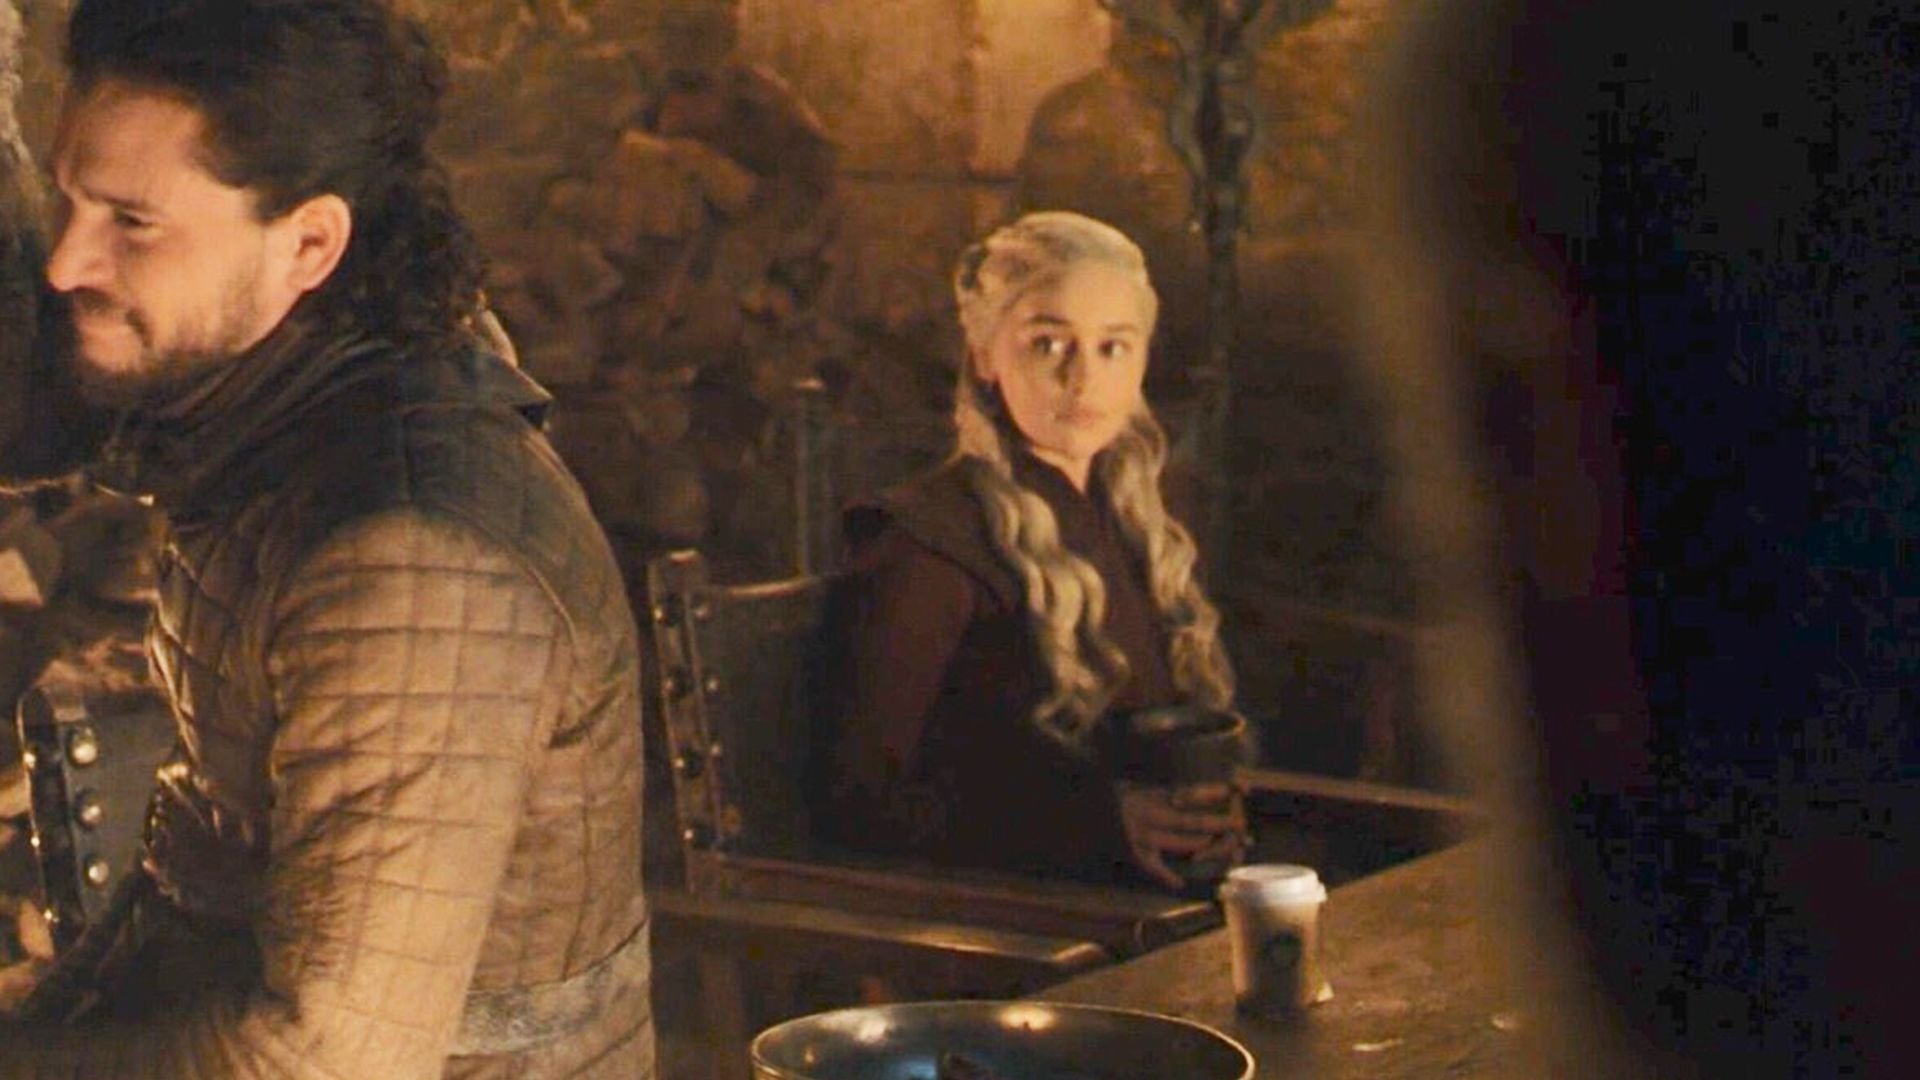 'Game Of Thrones' Showrunners Laugh About The Starbucks Cup Now